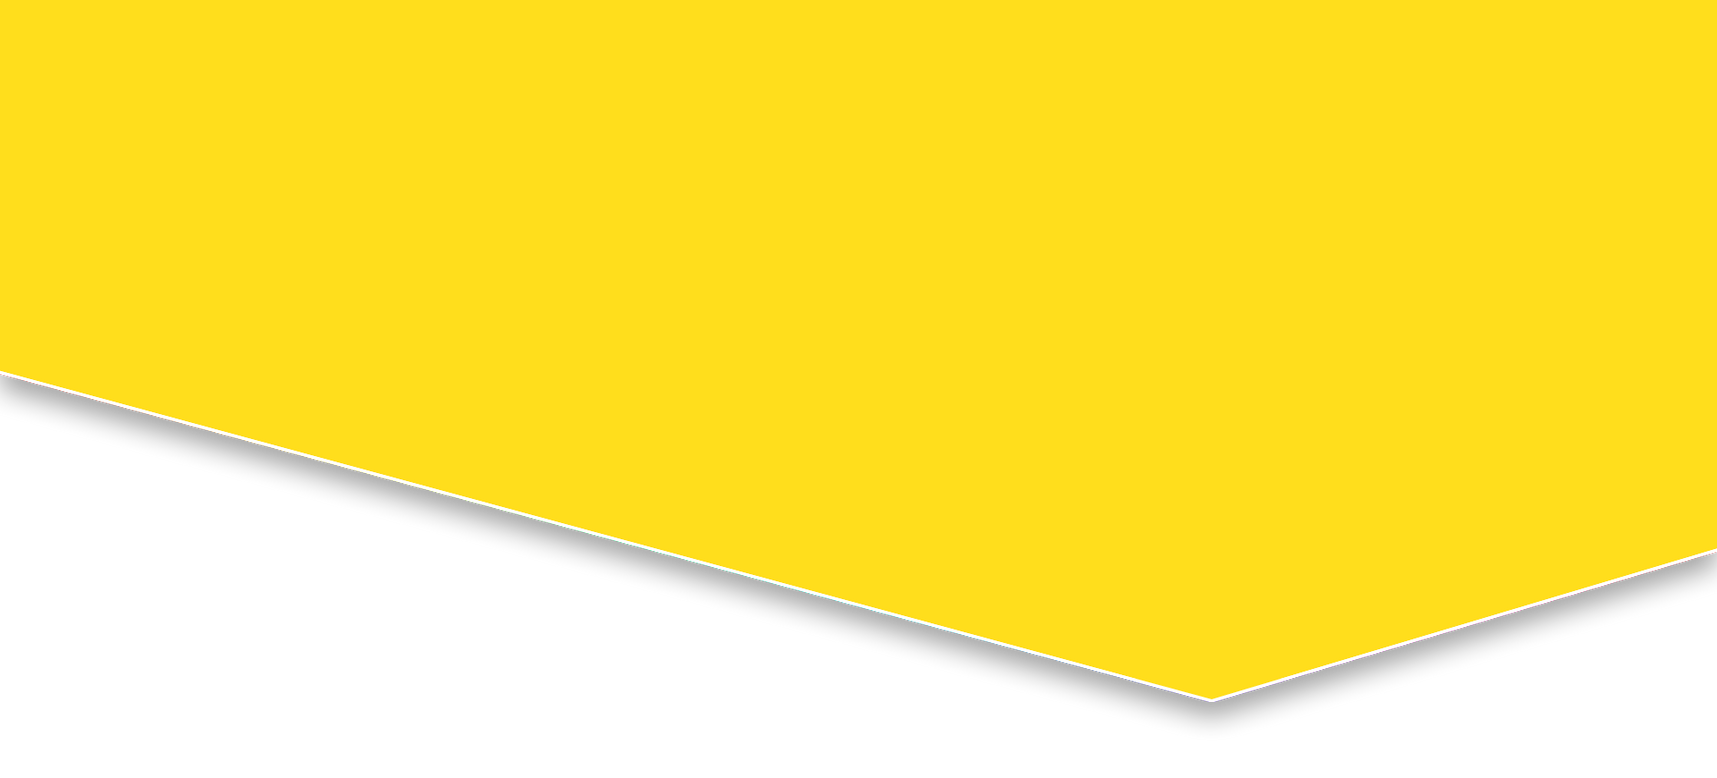 Yellow p1.png